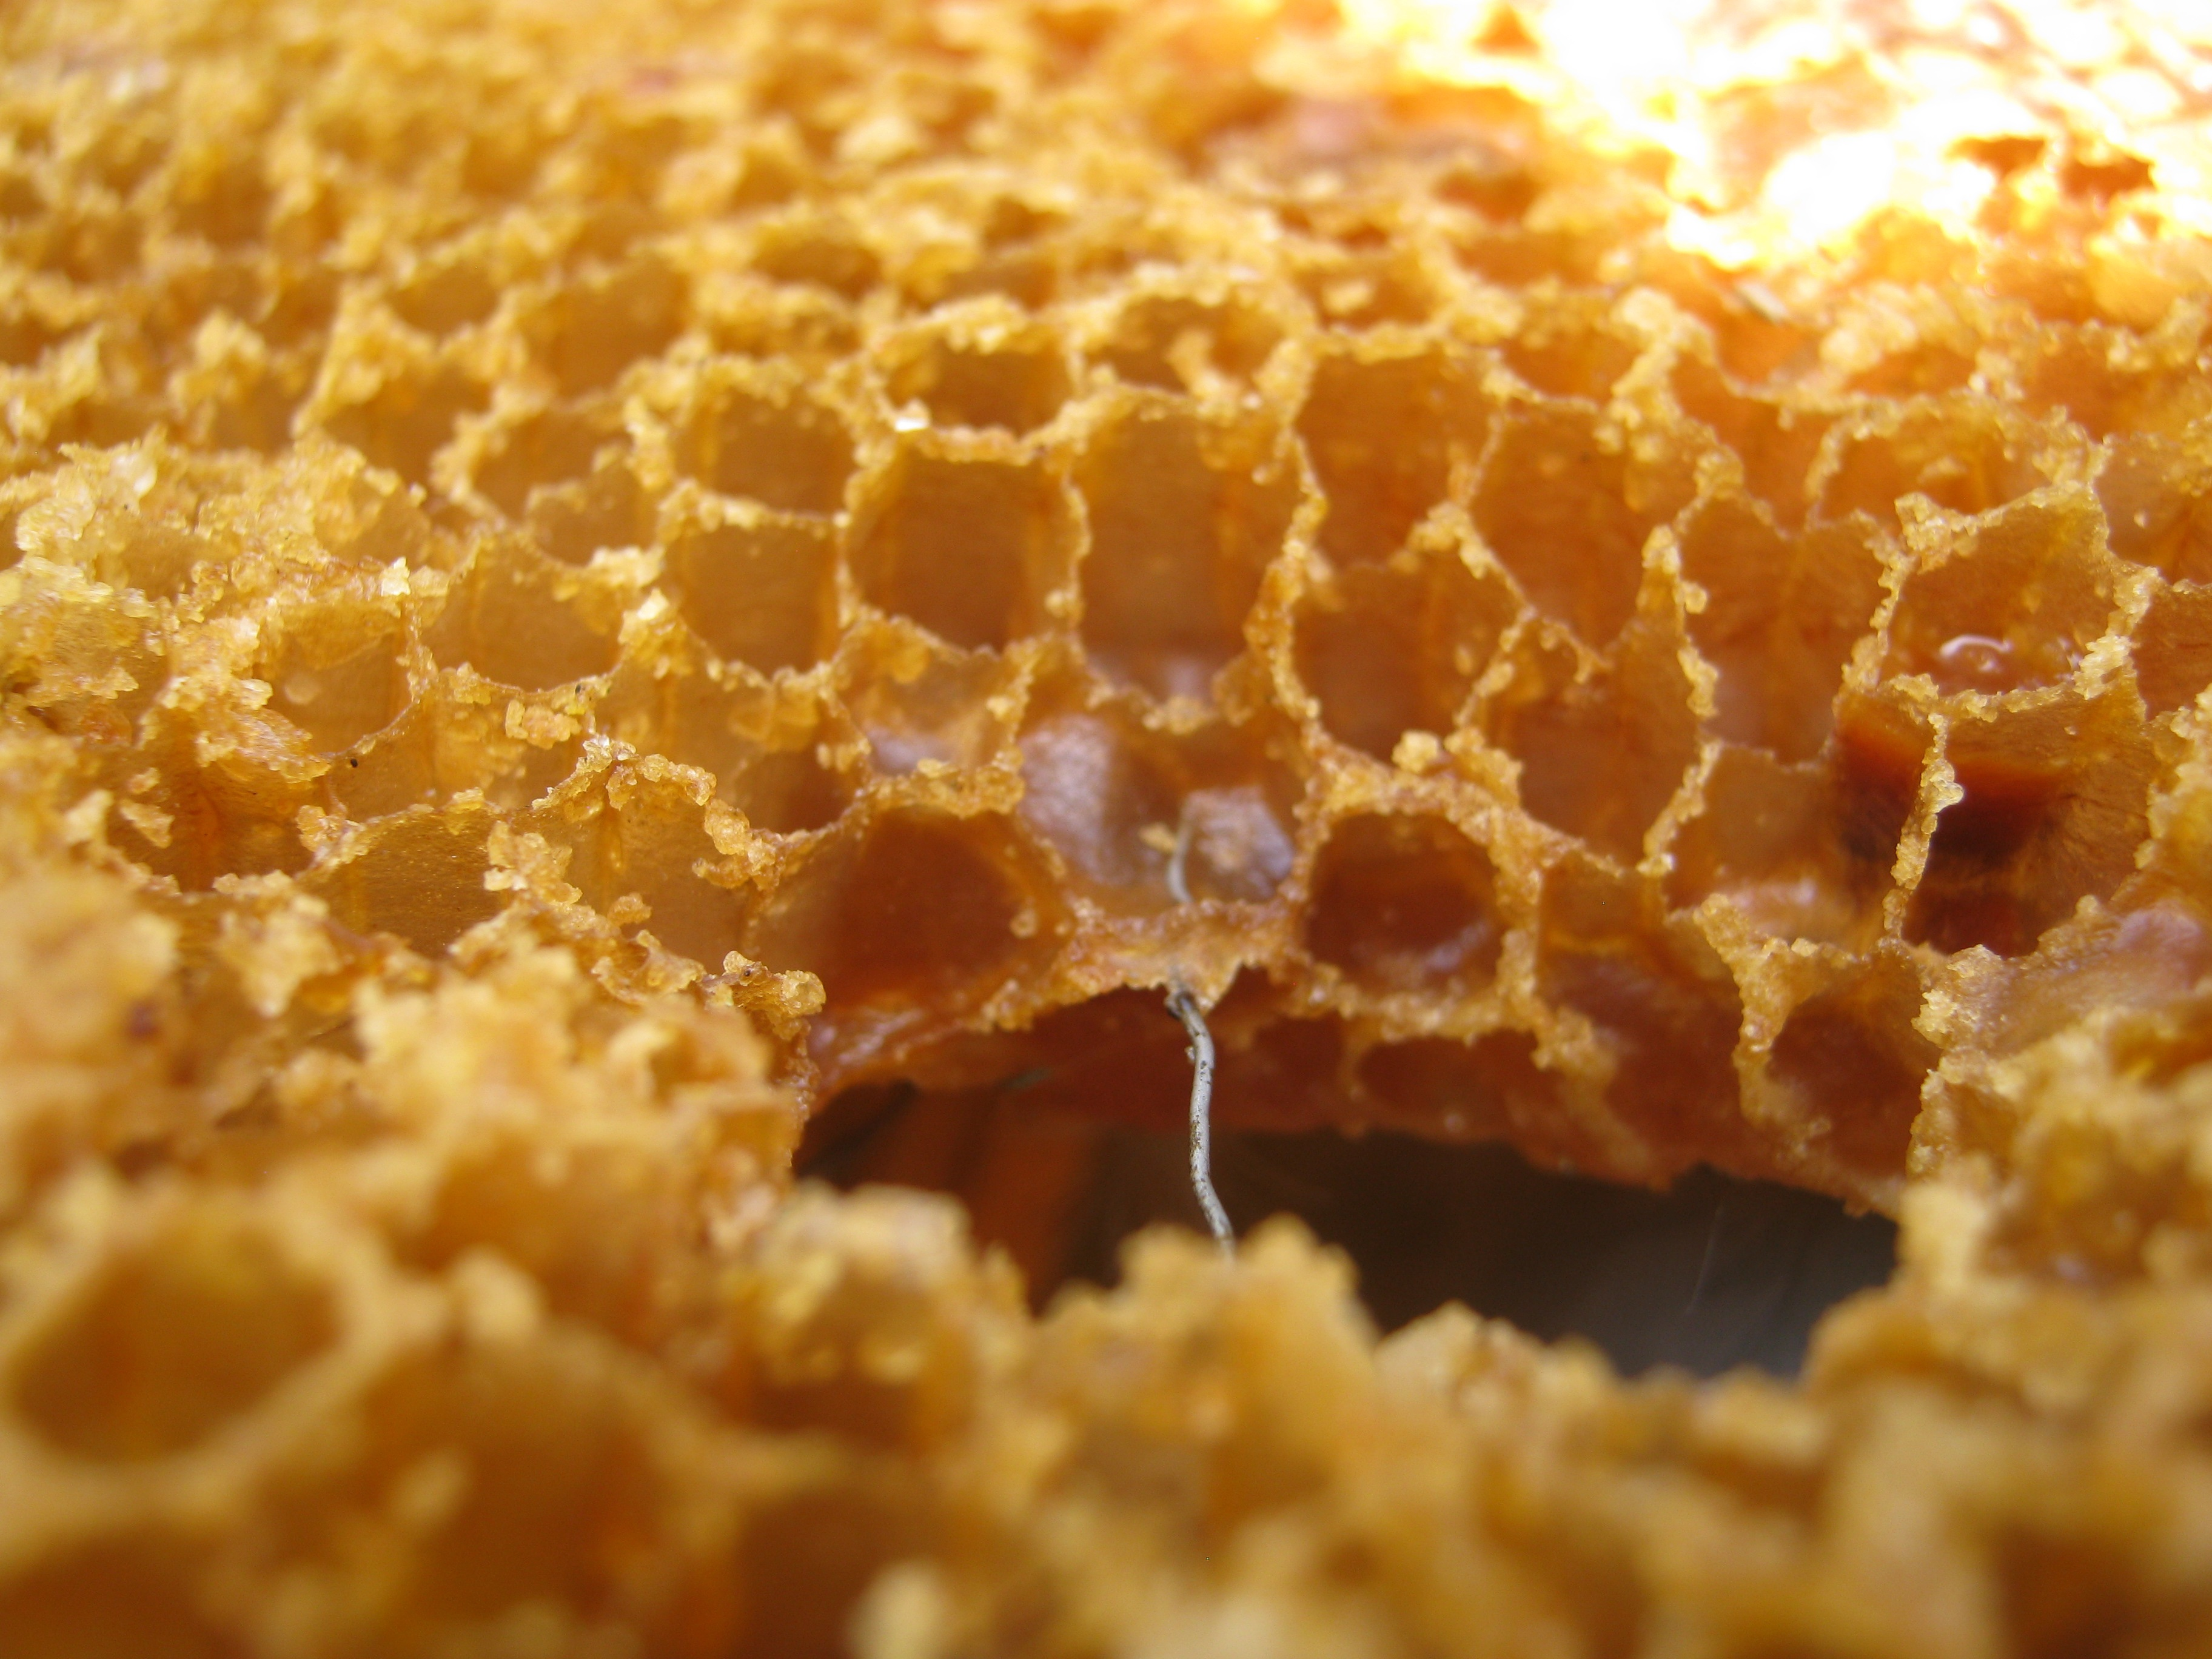 Honey as Medicine | Interesting Thing of the Day